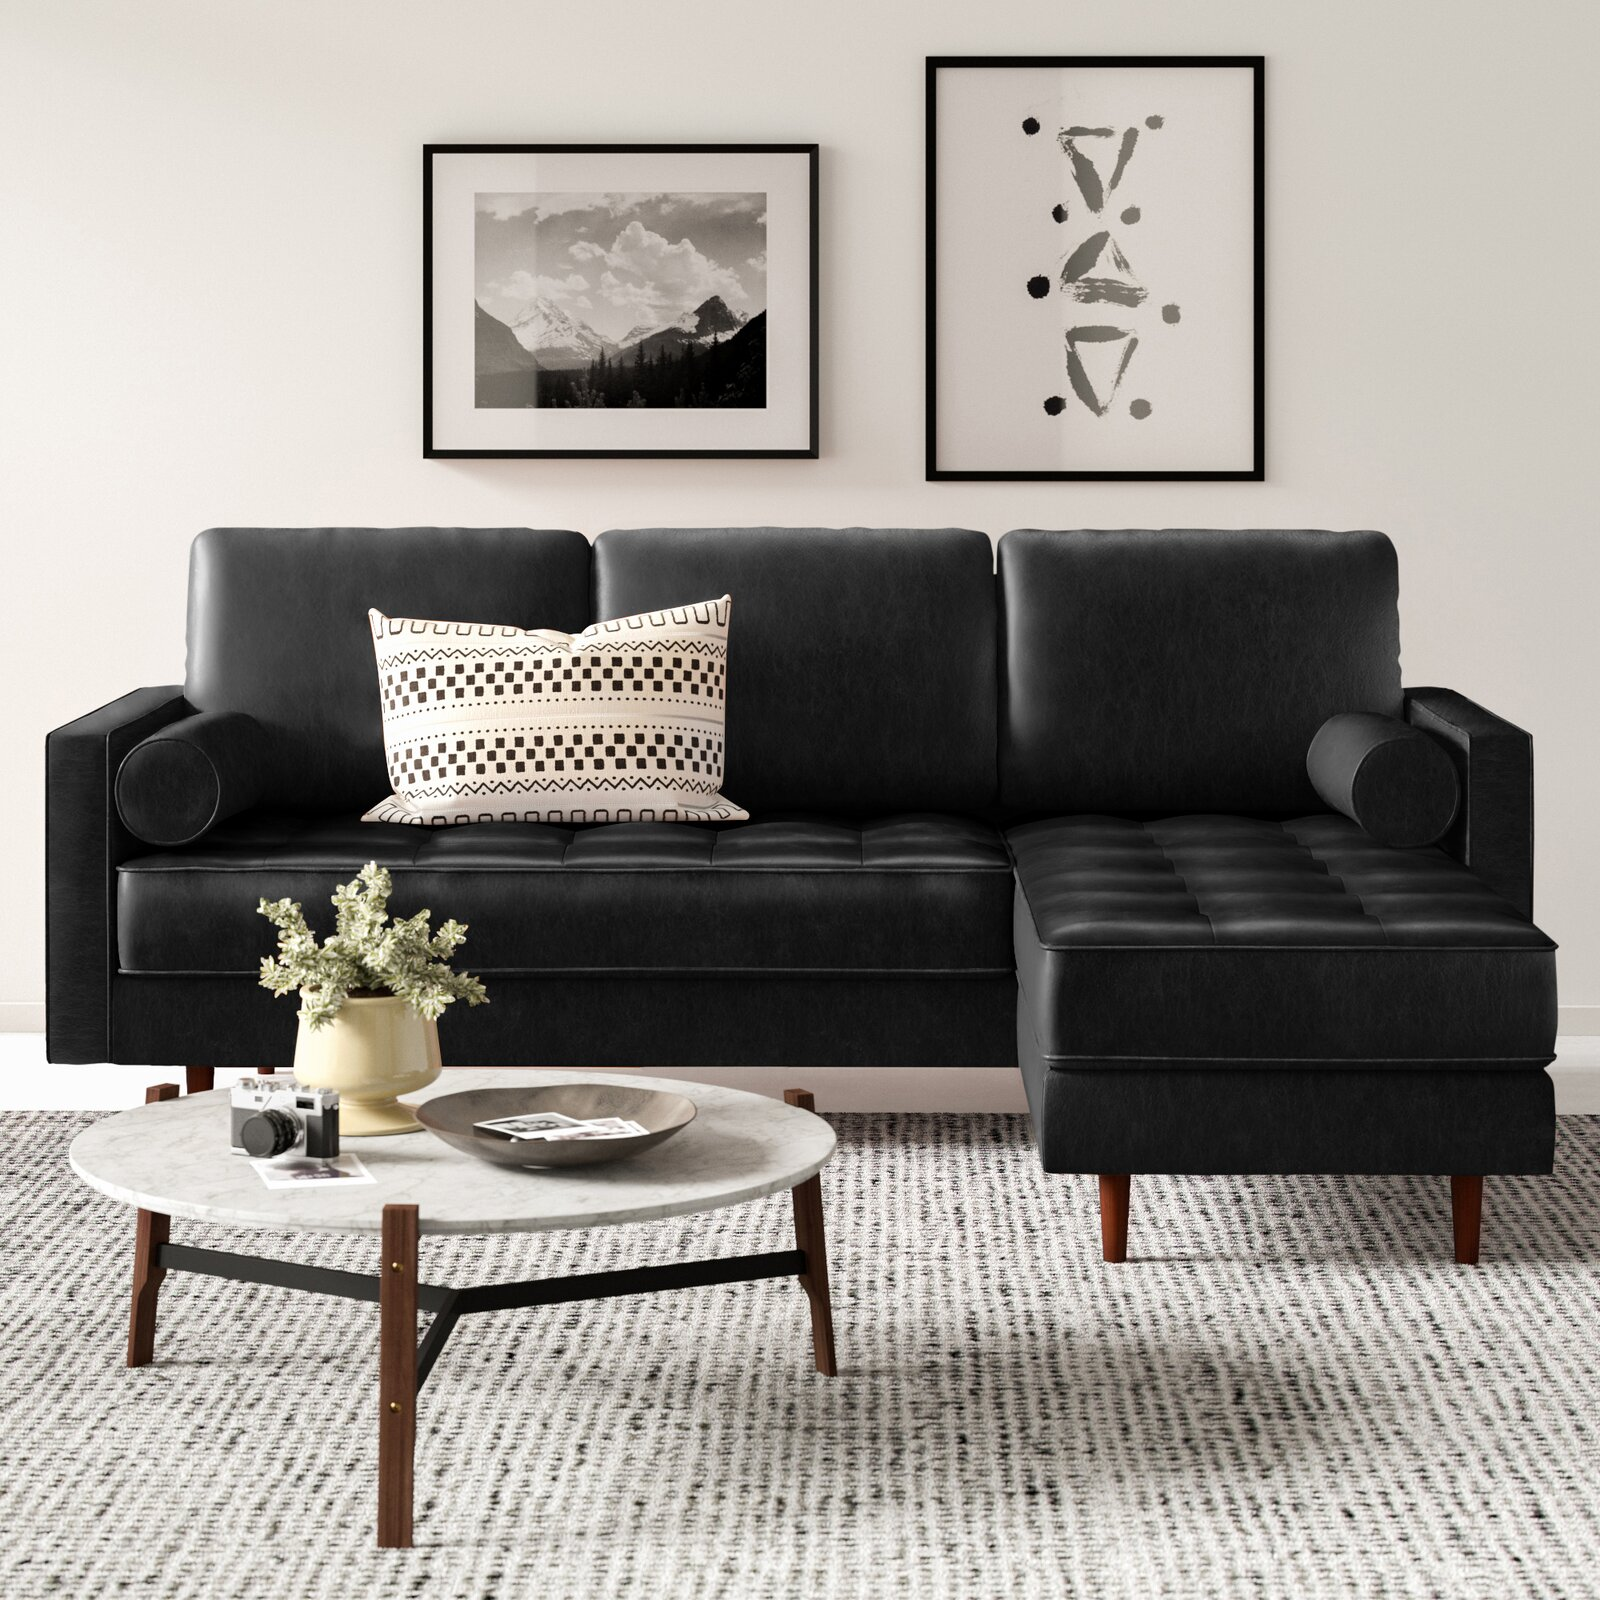 88-inch-small-leather-sectional-sofa-black-upholstery-tufted-bench-seats-modern-space-saving-couch-with-chaise